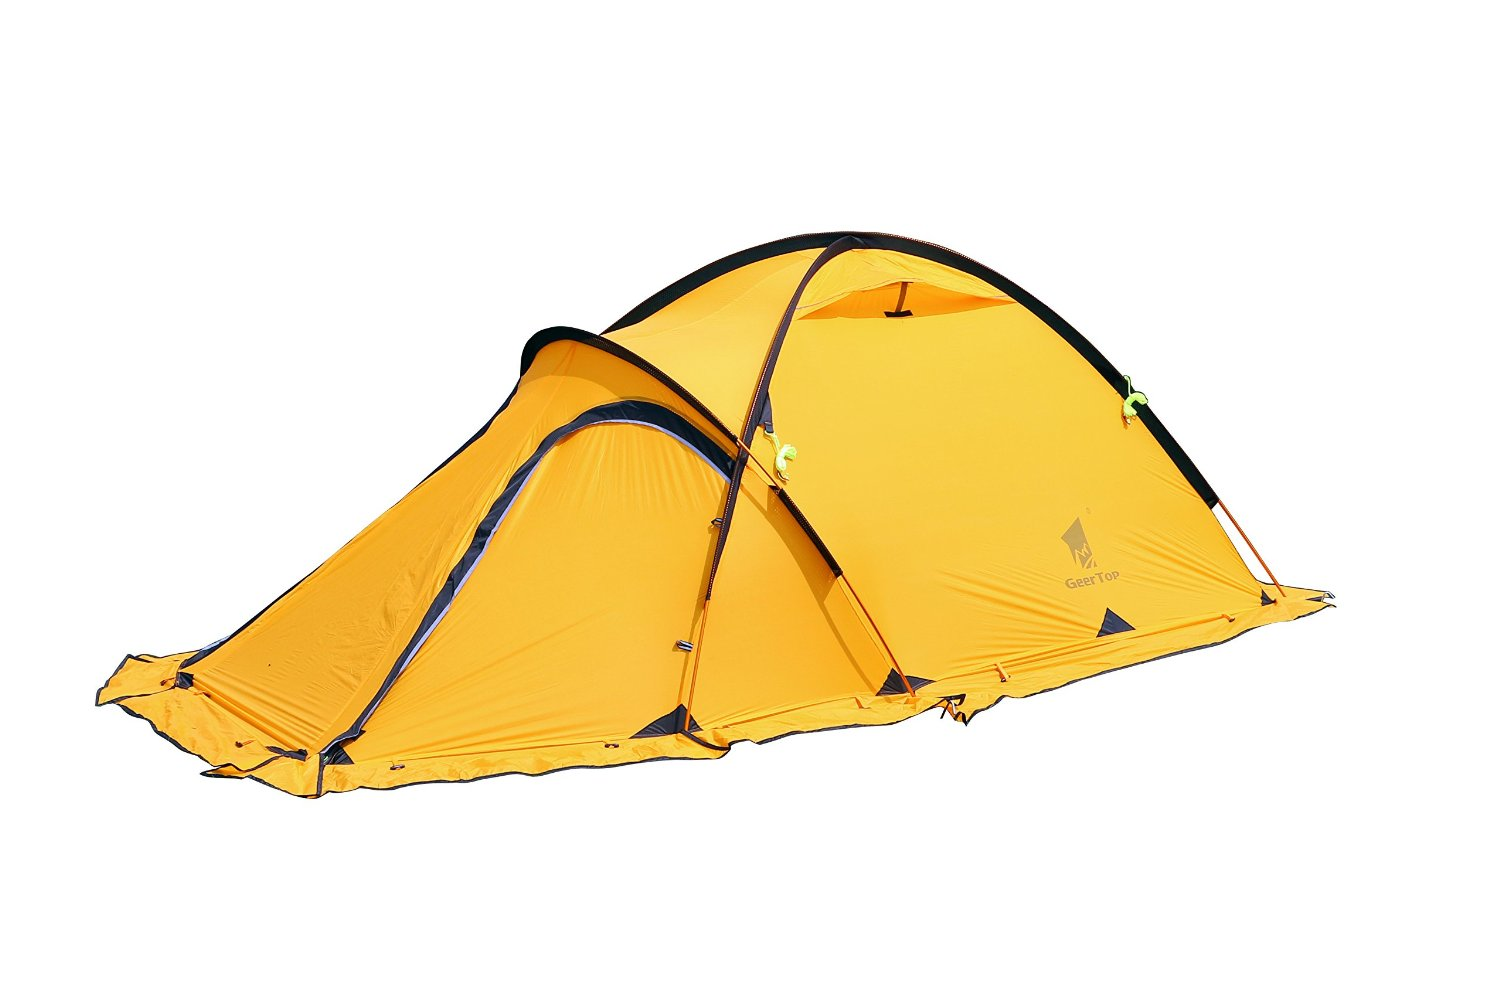 GEERTOP 4-season 2-person 20D Lightweight Backpacking Alpine Tent For Camping, Hiking, Climbing